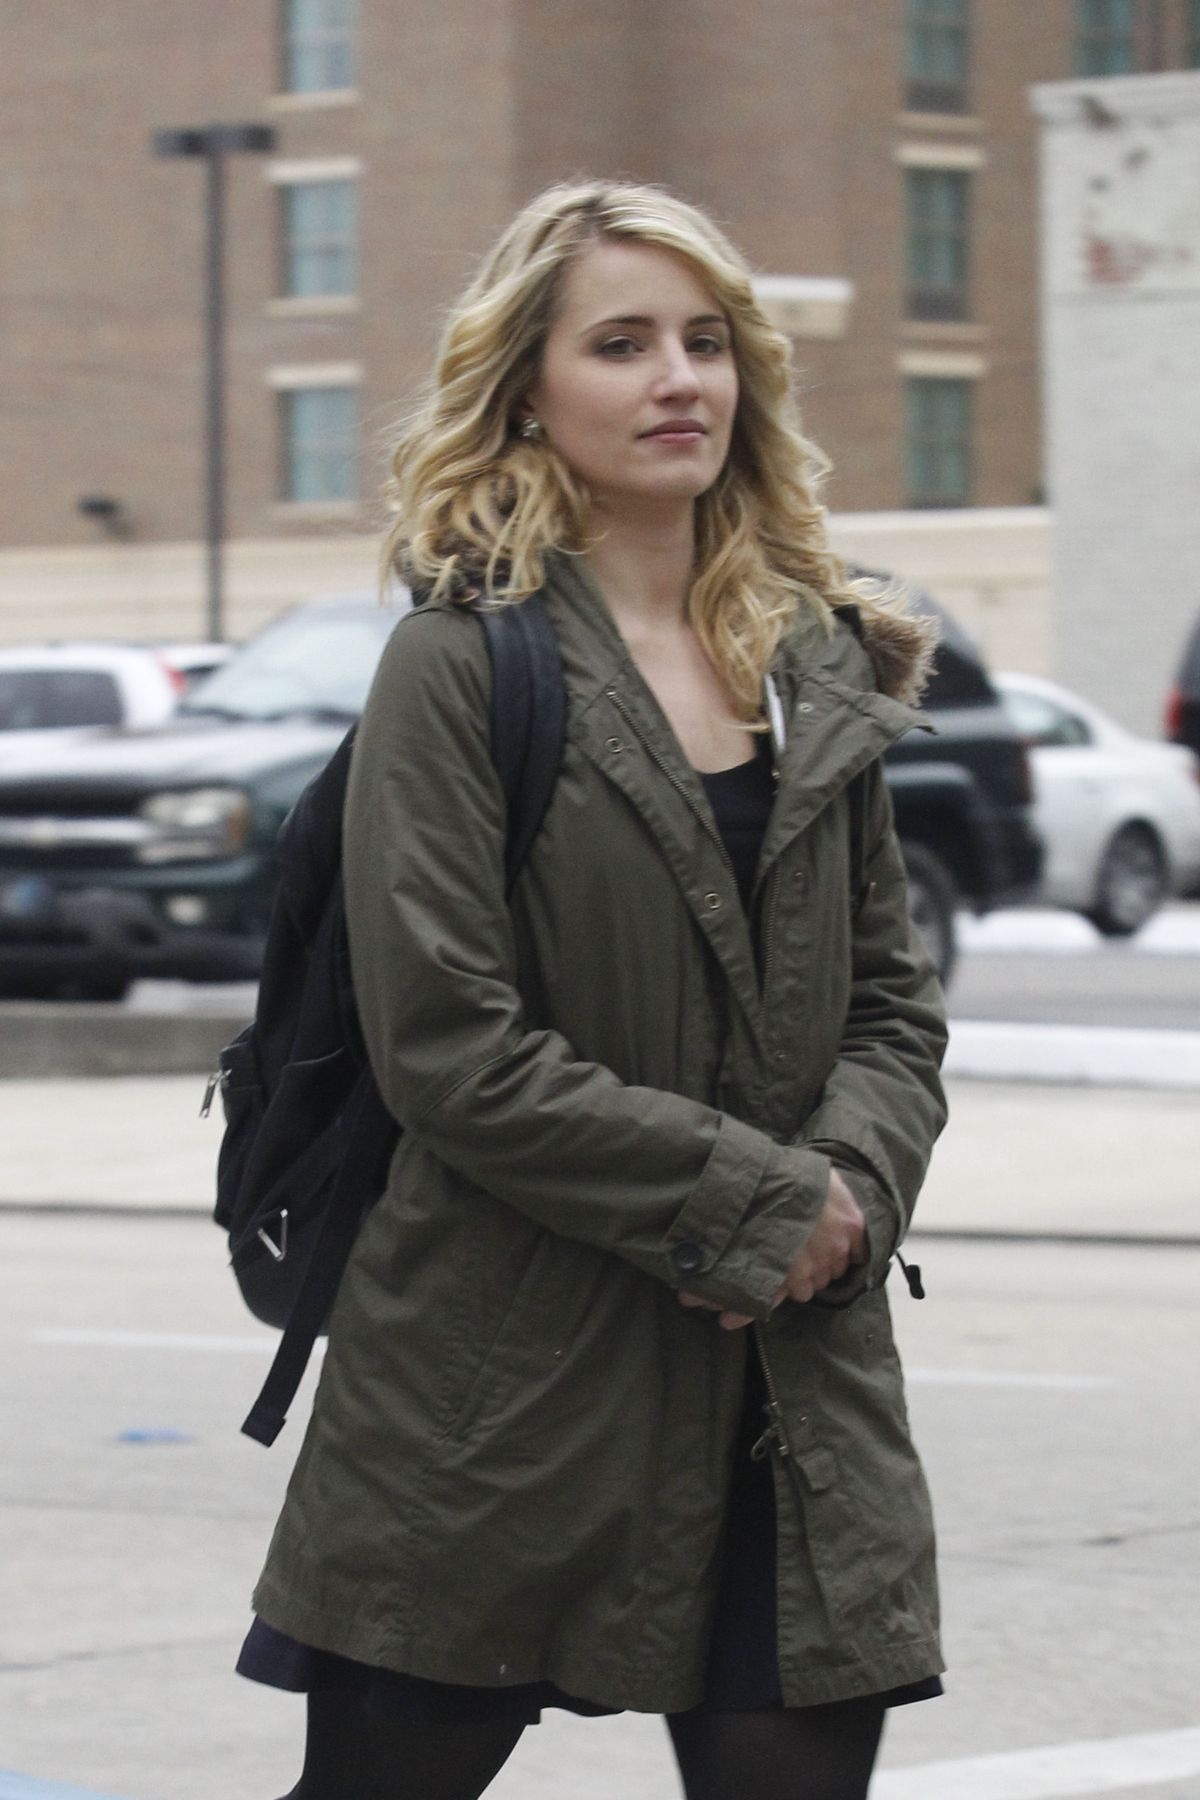 DIANNA AGRON on the Set of Zipper in Baton Rouge